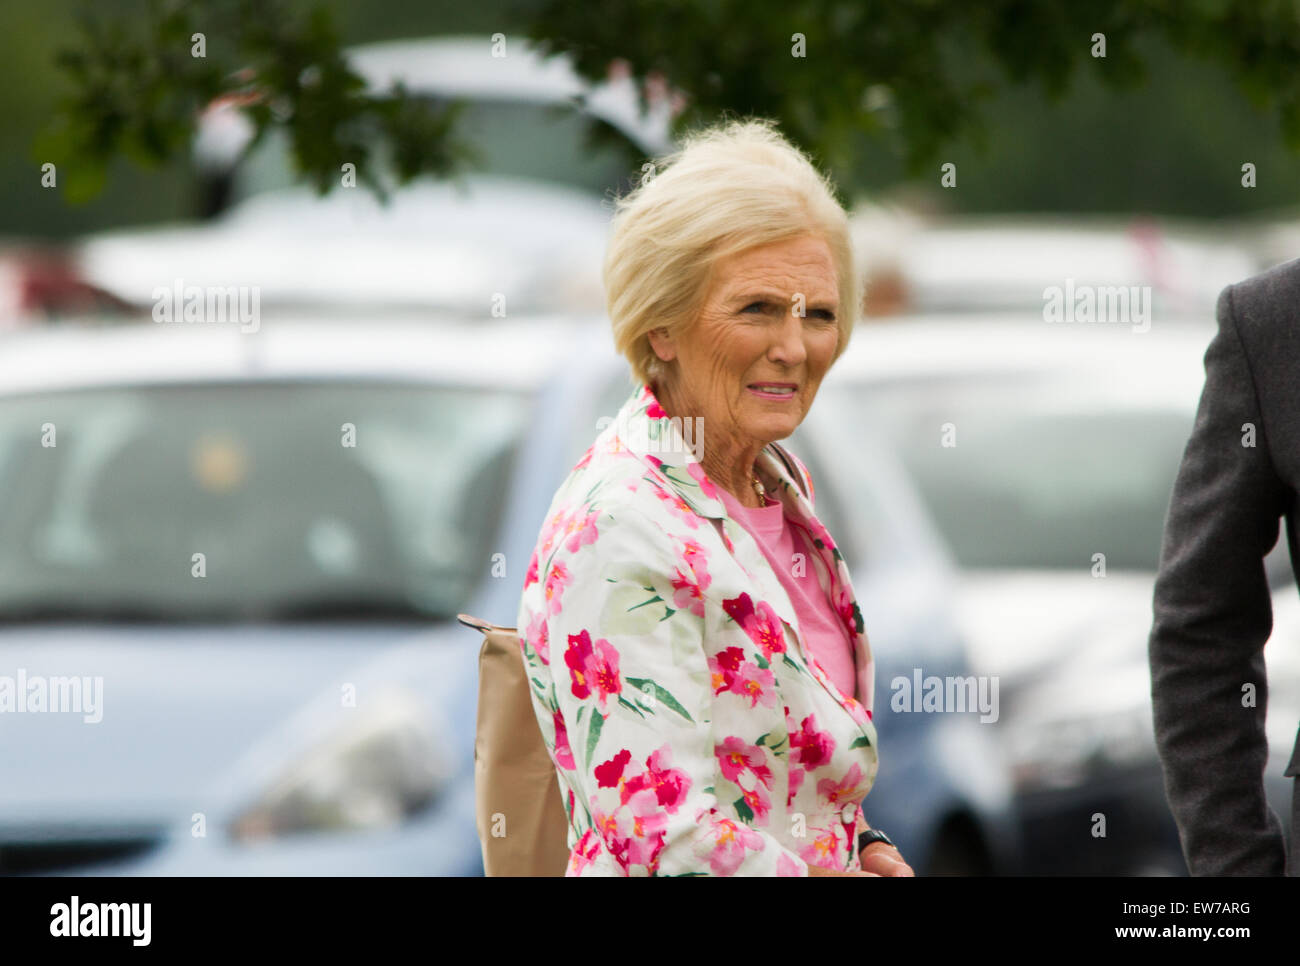 Oxford, UK. 19th June, 2015. Mary Berry Opens the Blenheim palace flower show Pete Lusabia/Alamy Live show Credit: - Stock Image